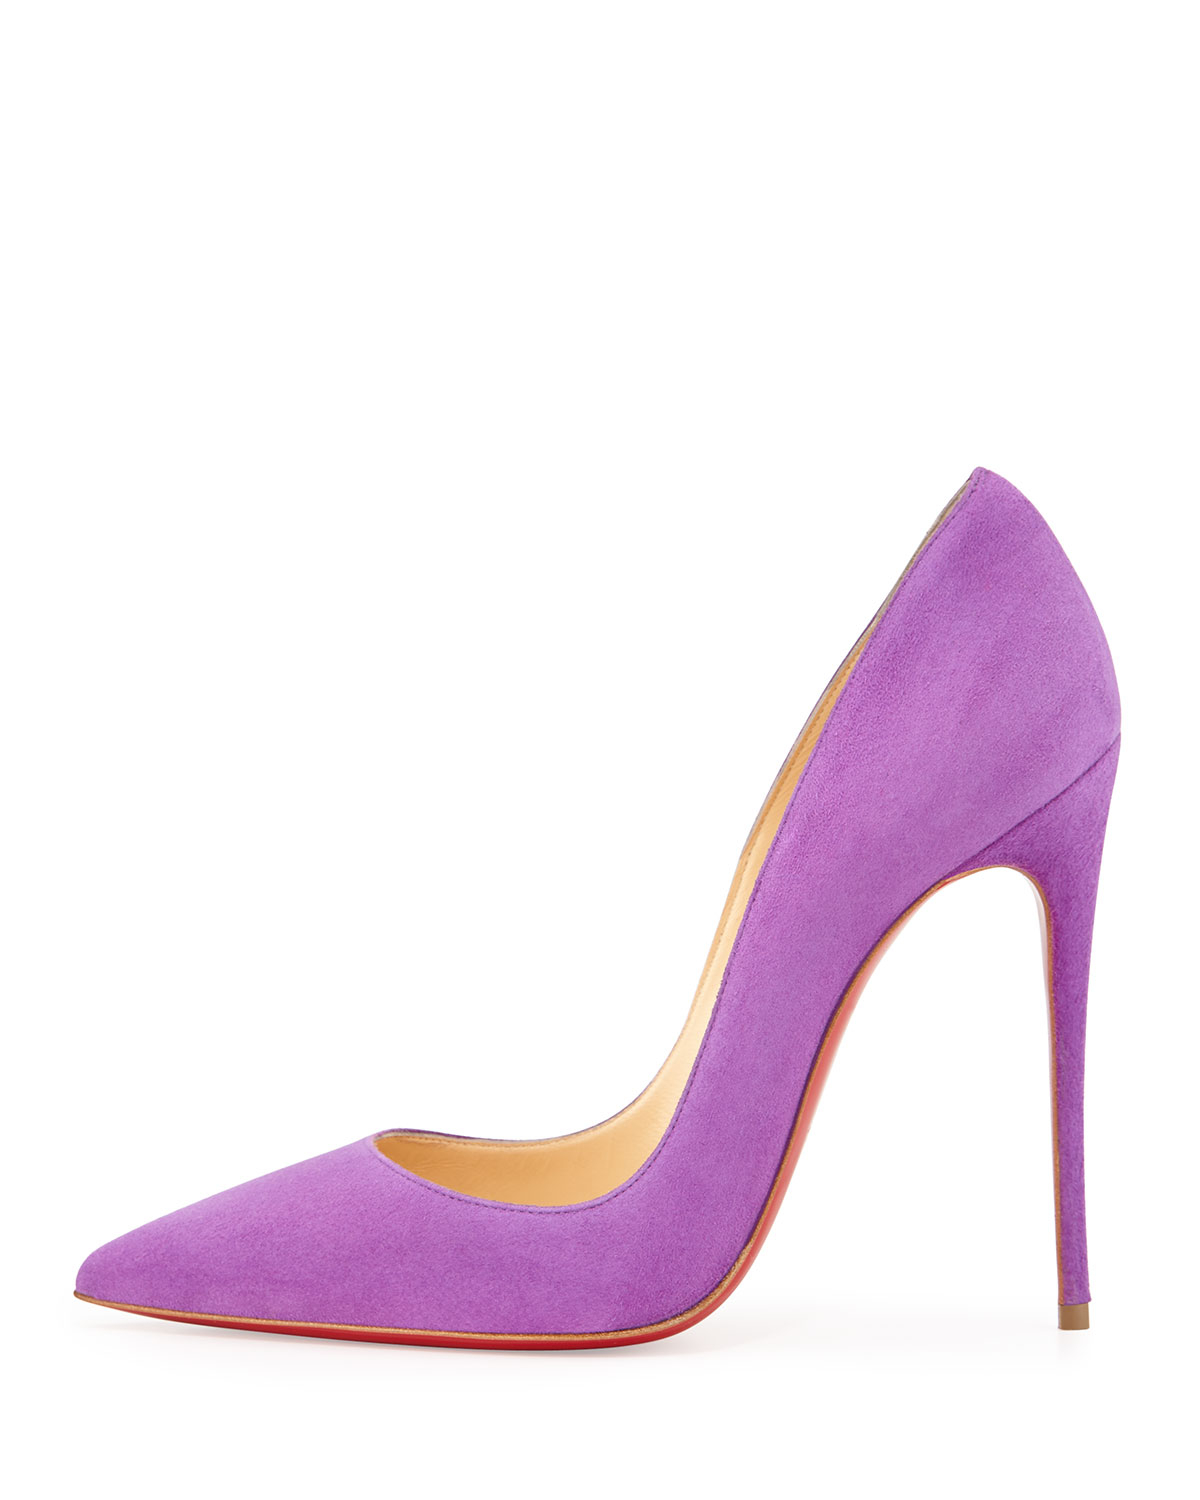 f3cd32320a22 Lyst - Christian Louboutin So Kate Suede Red Sole Pump in Purple